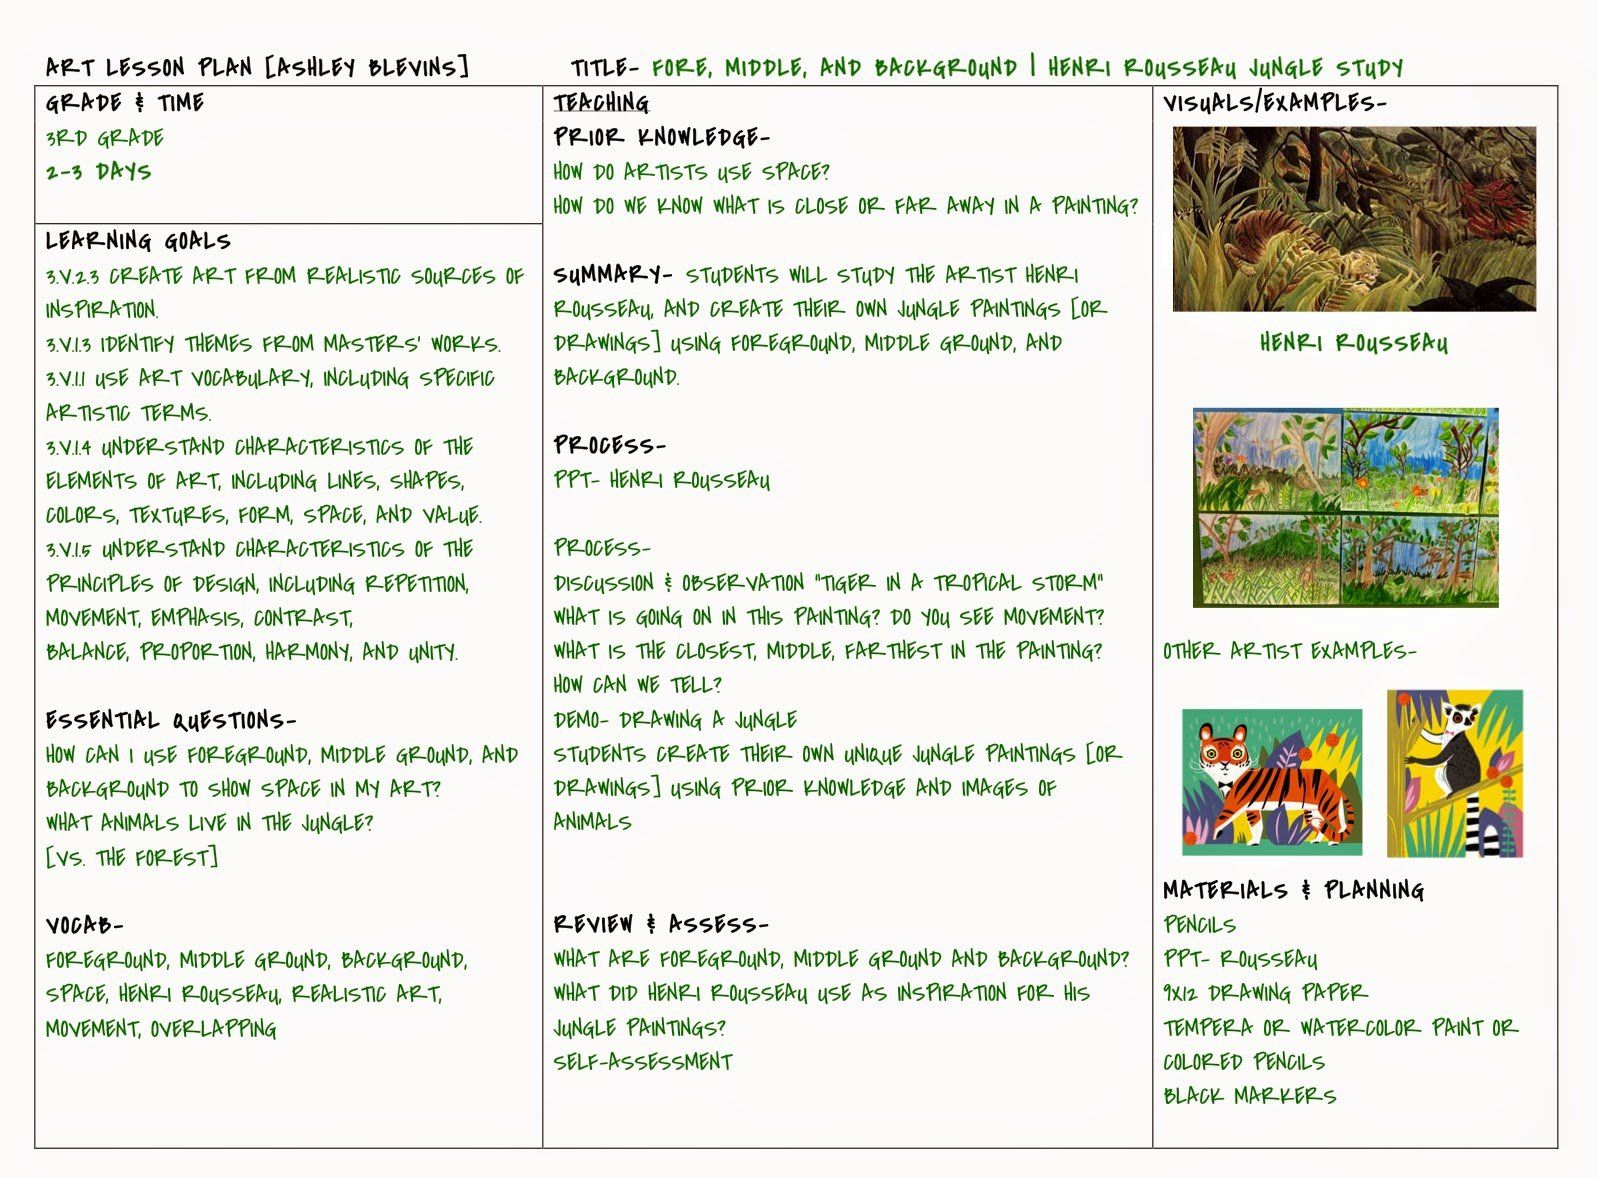 25 Art Lesson Plans Template In